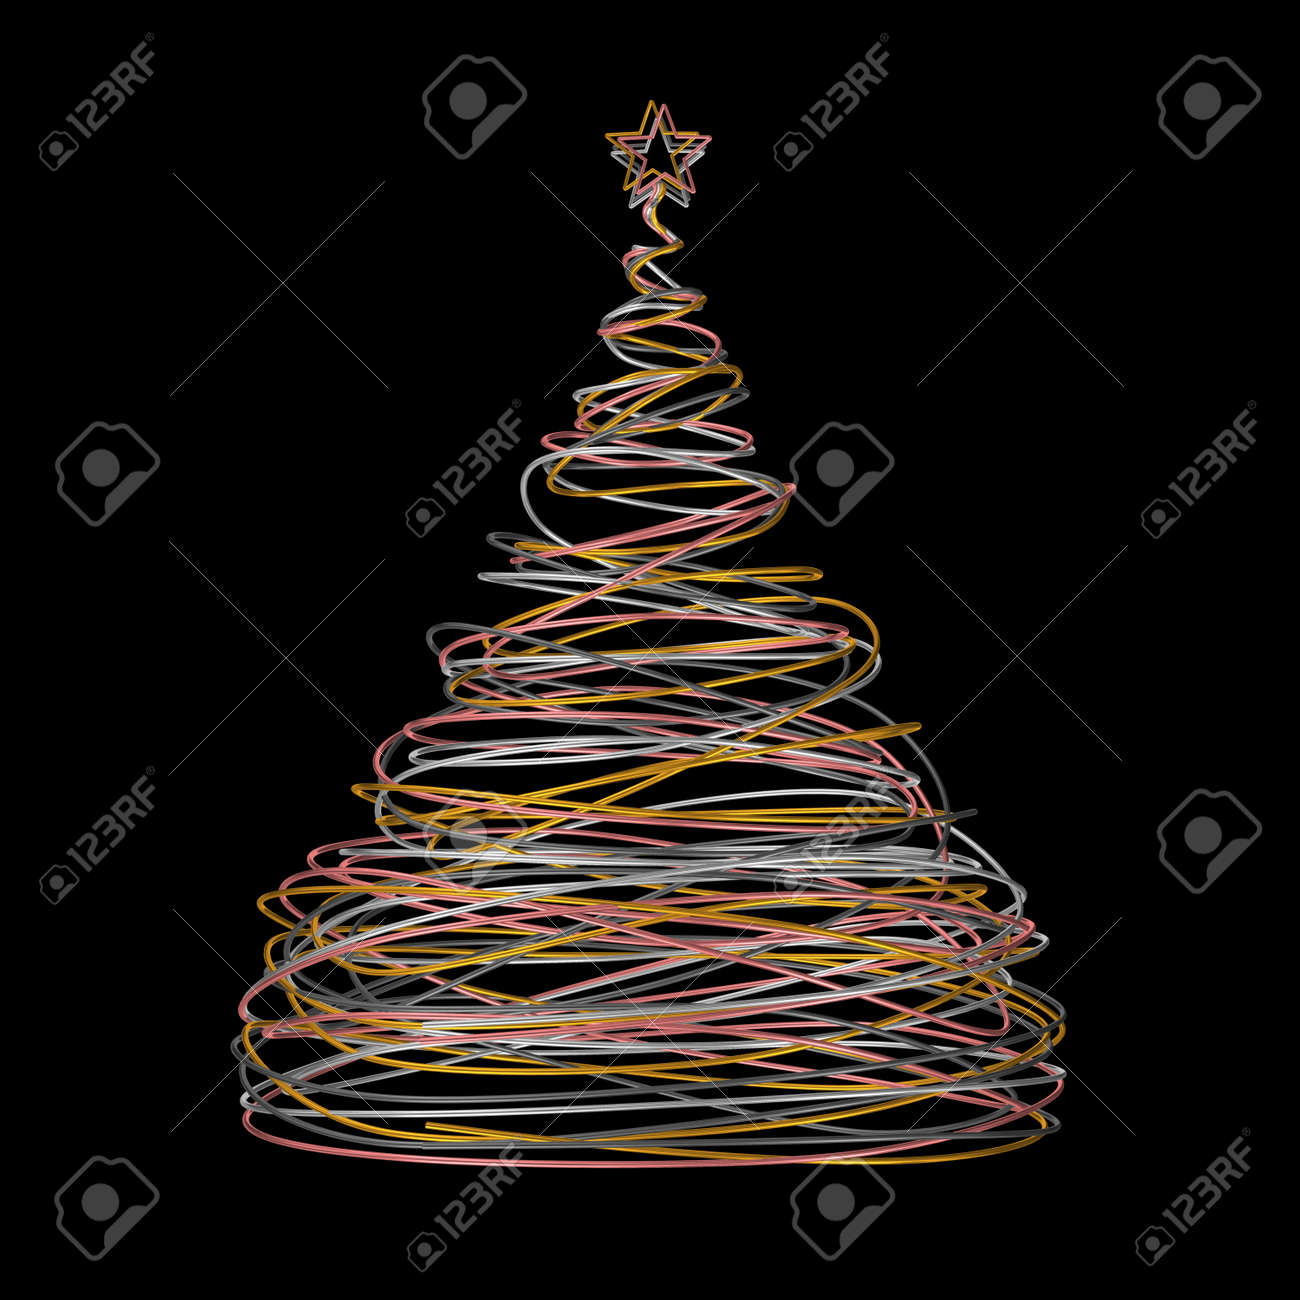 Christmas Tree Made Of Gold White Grey And Pink Wire On Black Stock Photo Picture And Royalty Free Image Image 62950526